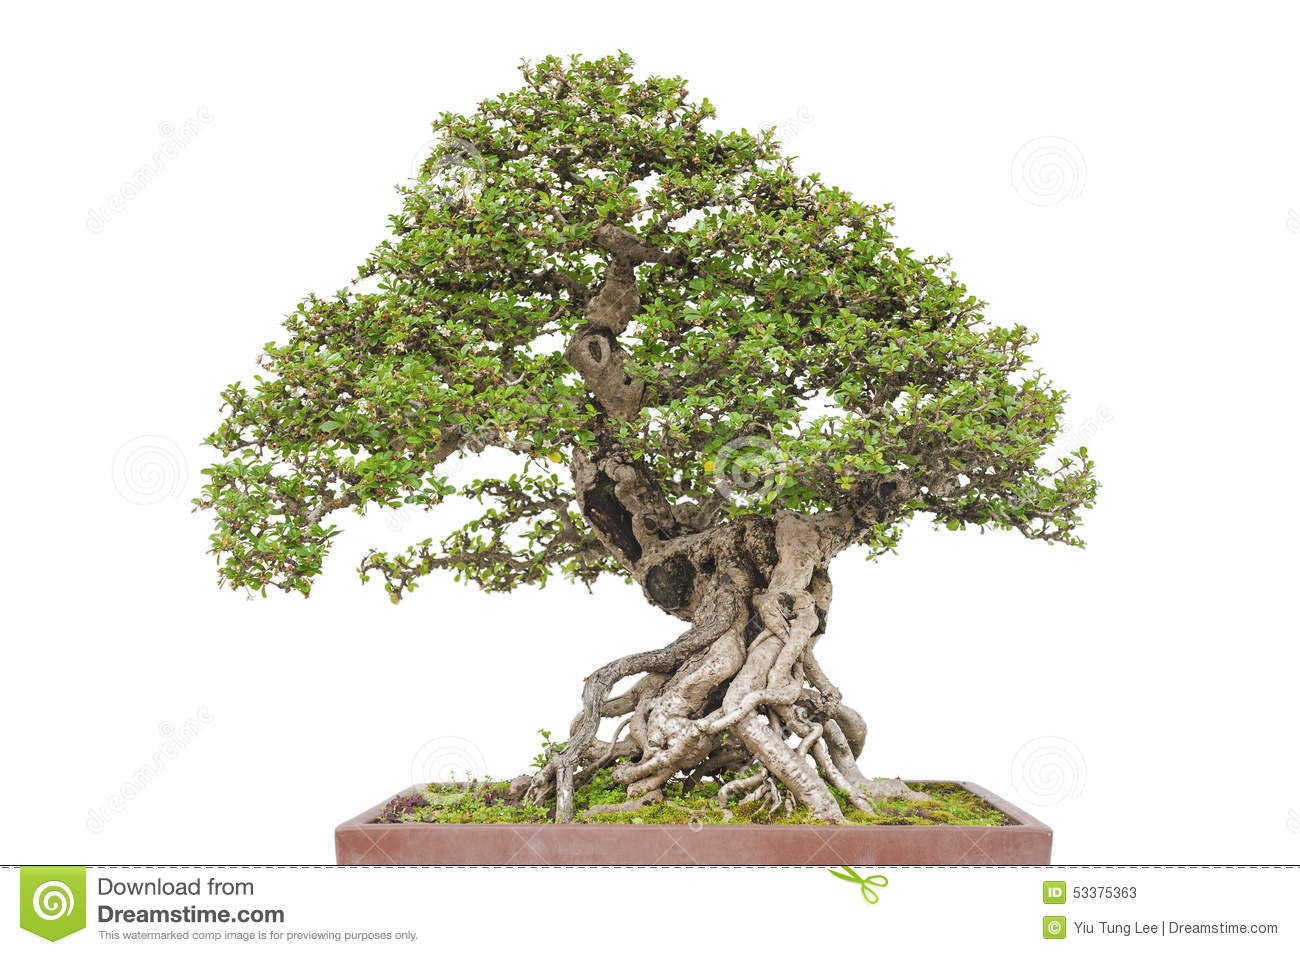 Wiring Yew Bonsai Best Electrical Schematic Diagram Tree Taxus Baccata Stock Photography Pots